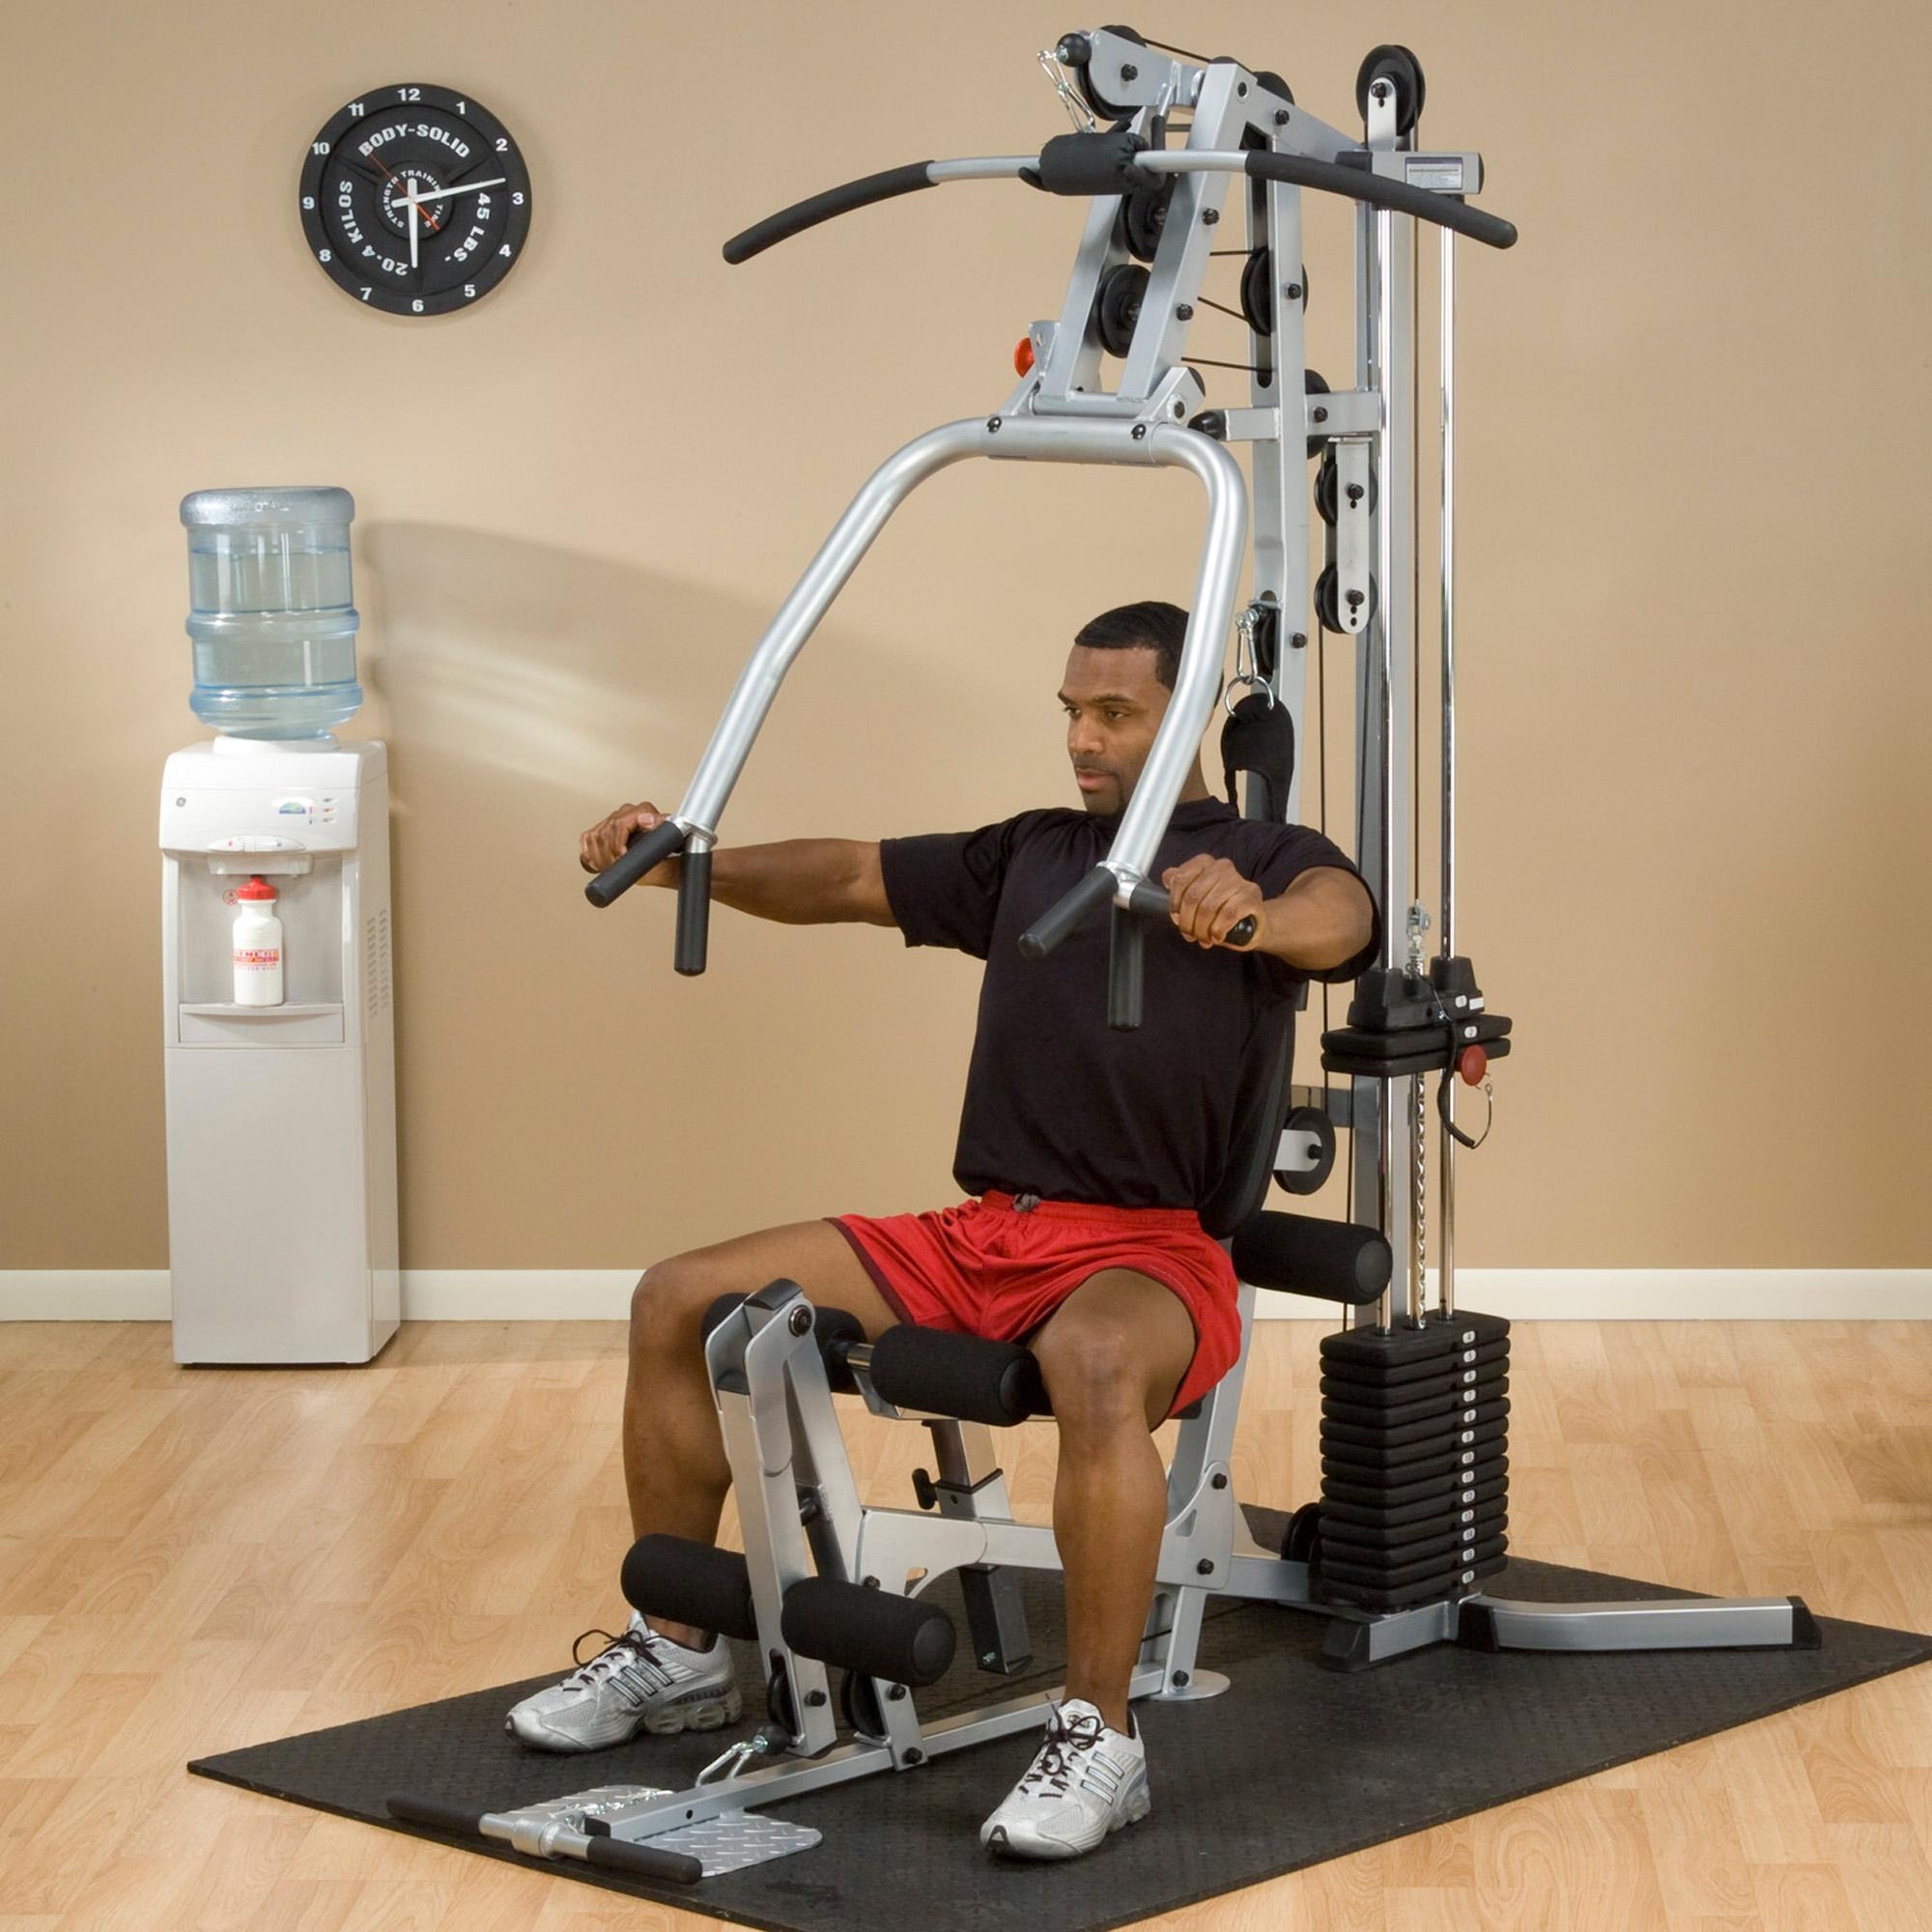 Easy Home Exercise Equipment: Amazon.com : Powerline By Body-Solid Easy-Assembly Home